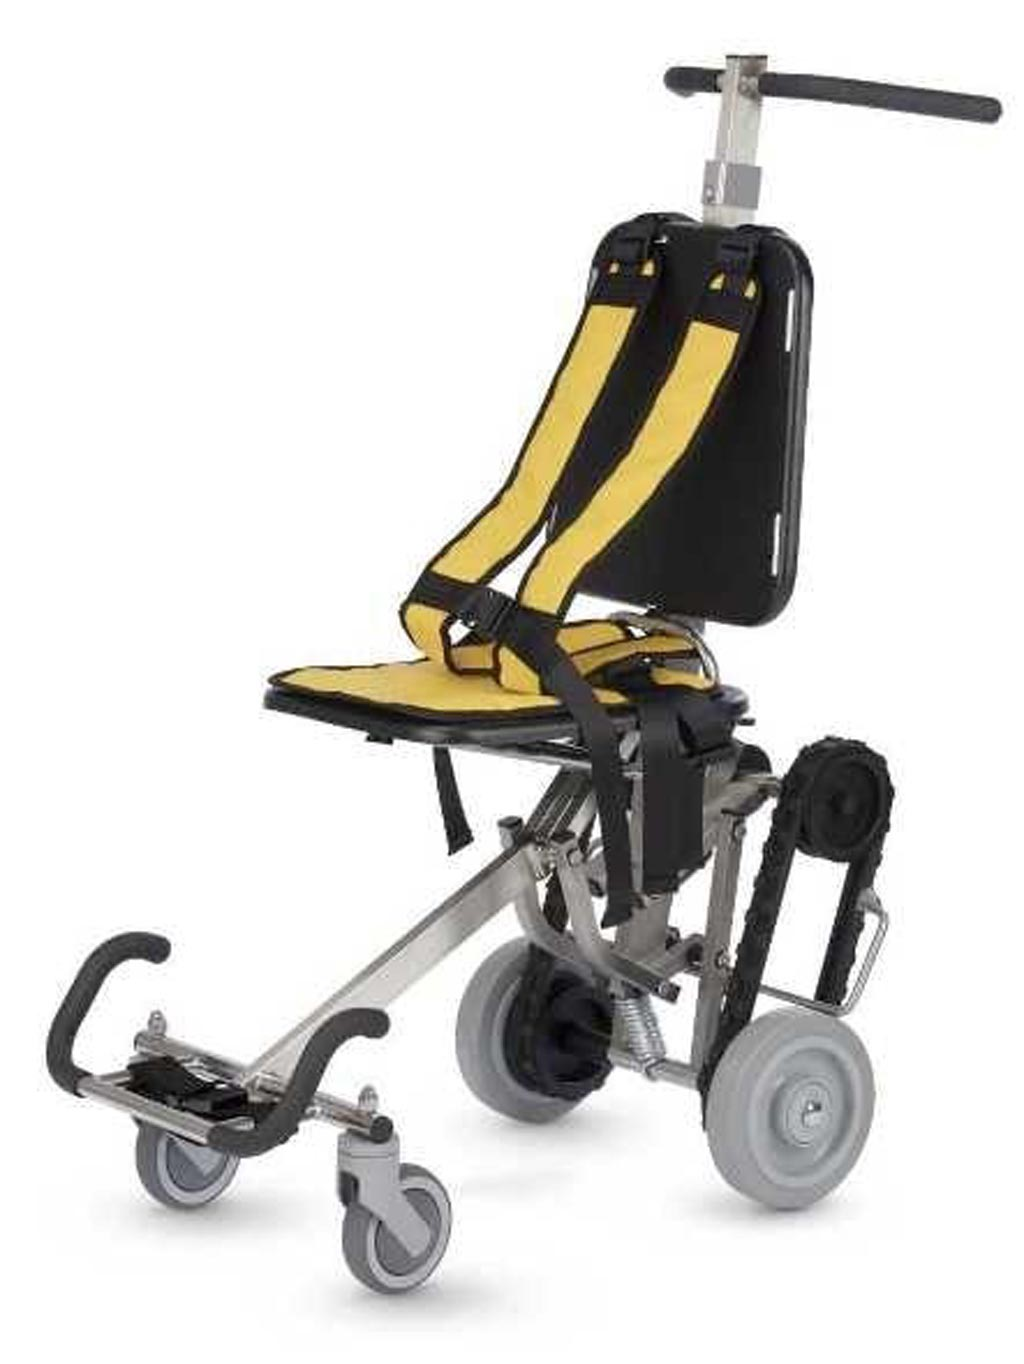 Image: The IBEX ambulance chair (Photo courtesy of ParAid Medical).